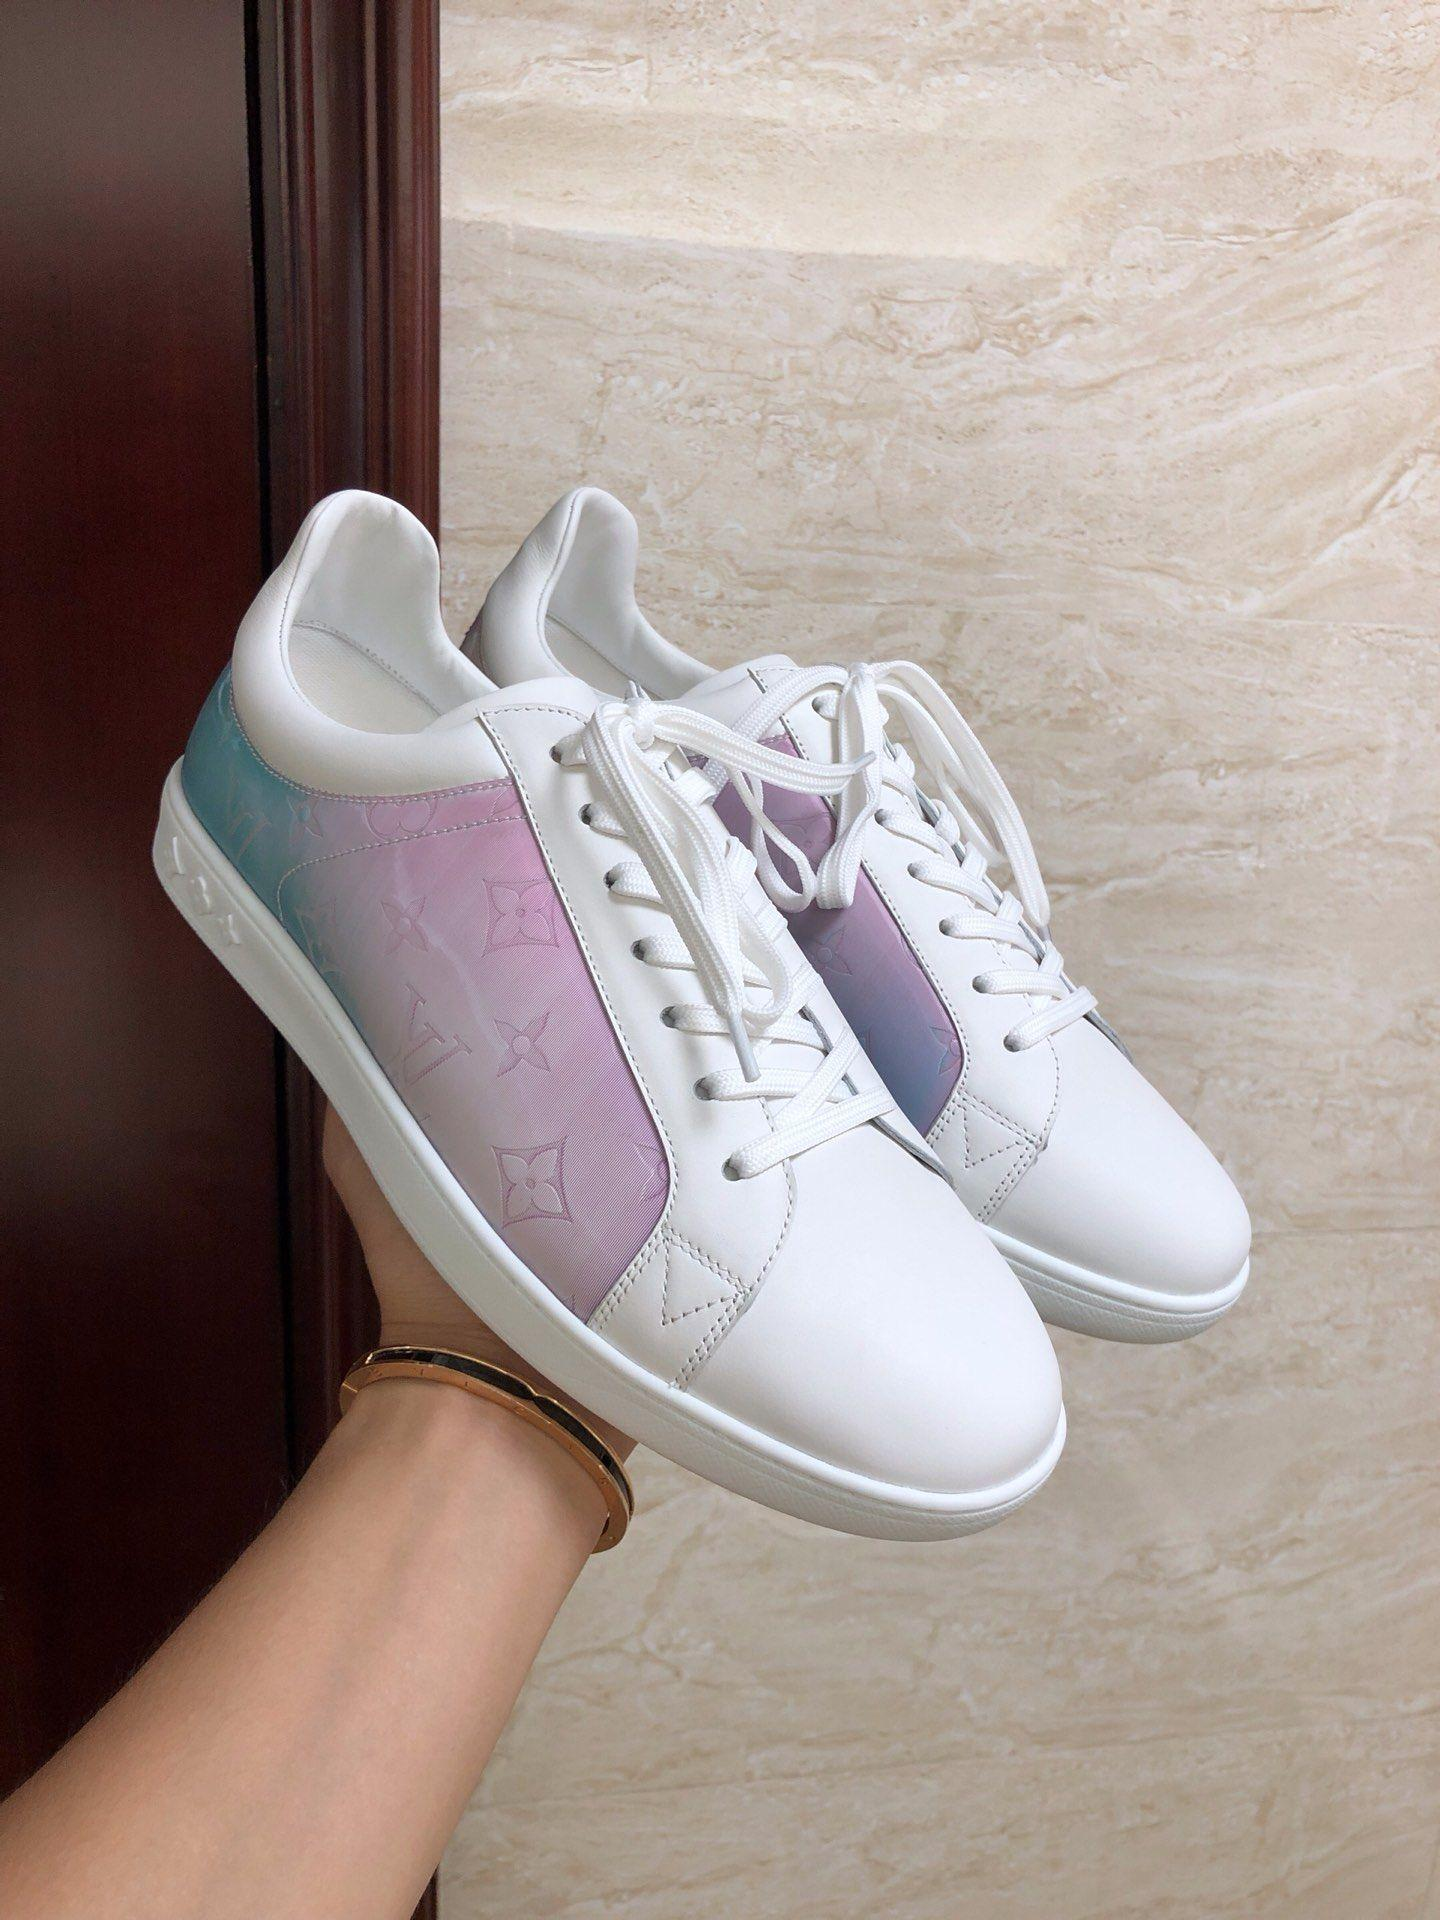 louis vuitton sneaker luxembourg Rose lv sneaker newest lv shoes 1A5HBA   5